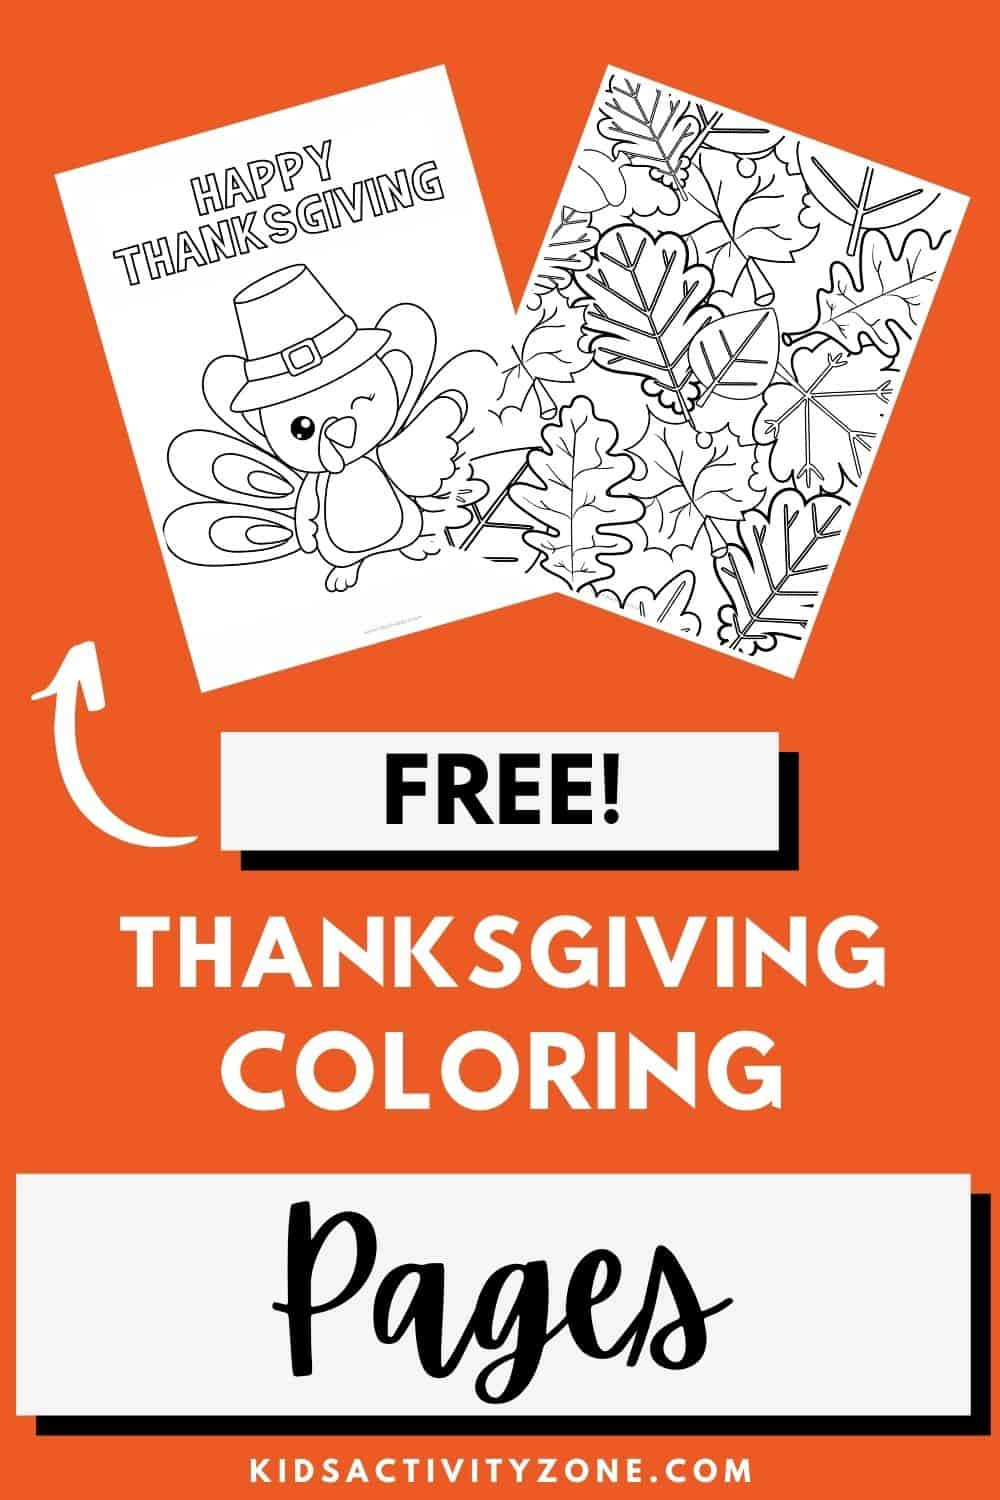 Print off these free Thanksgiving Coloring Pages for your holiday parties! They are great for both young and old.